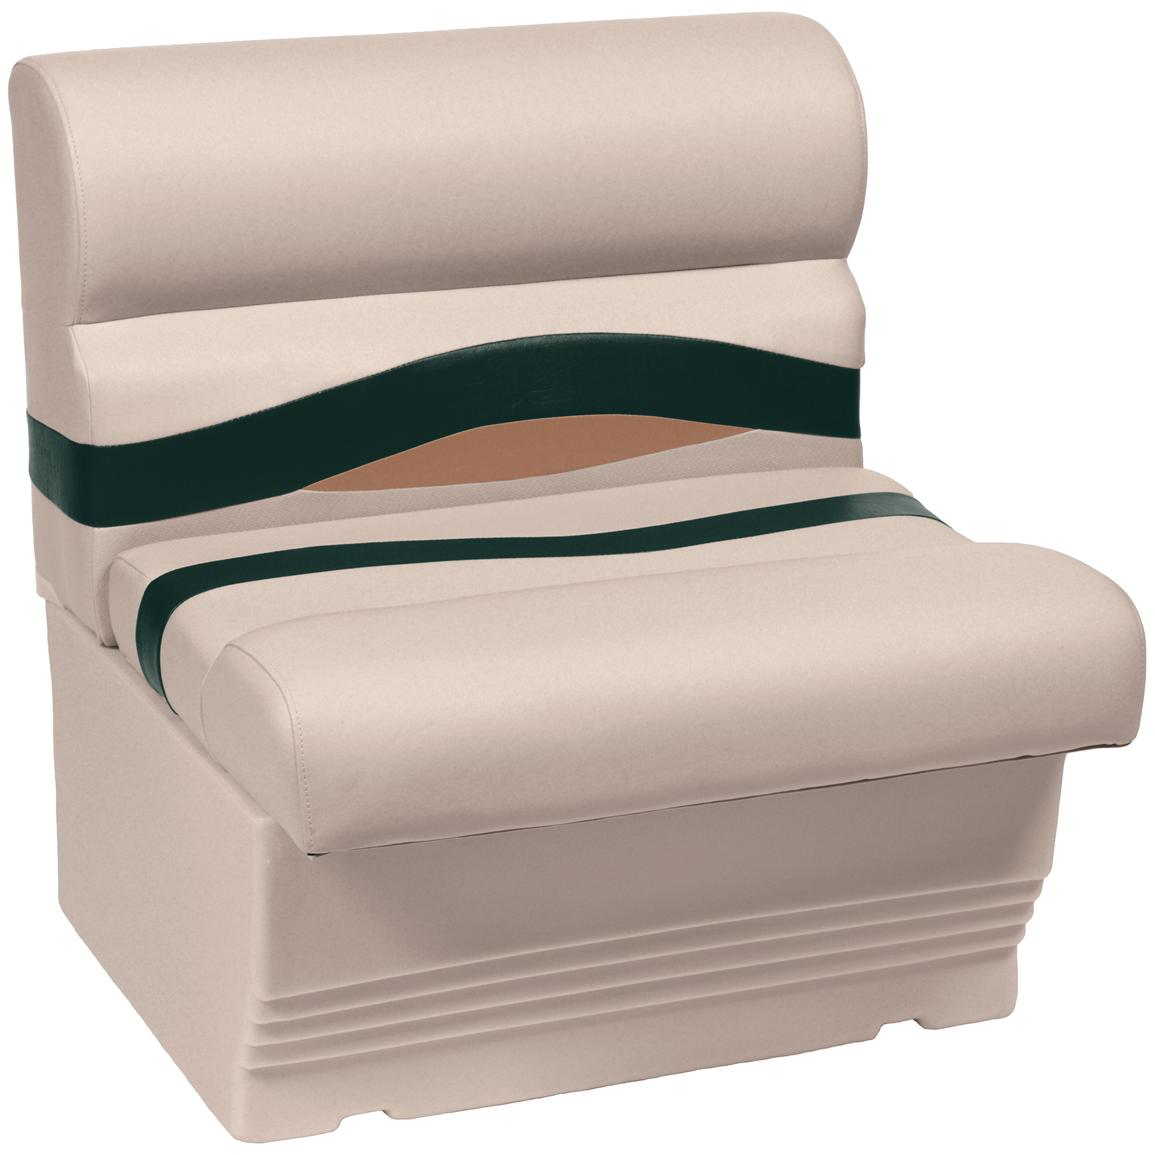 Wise® Premier 1100 Series 27 inch Pontoon Bench Seat, Color B